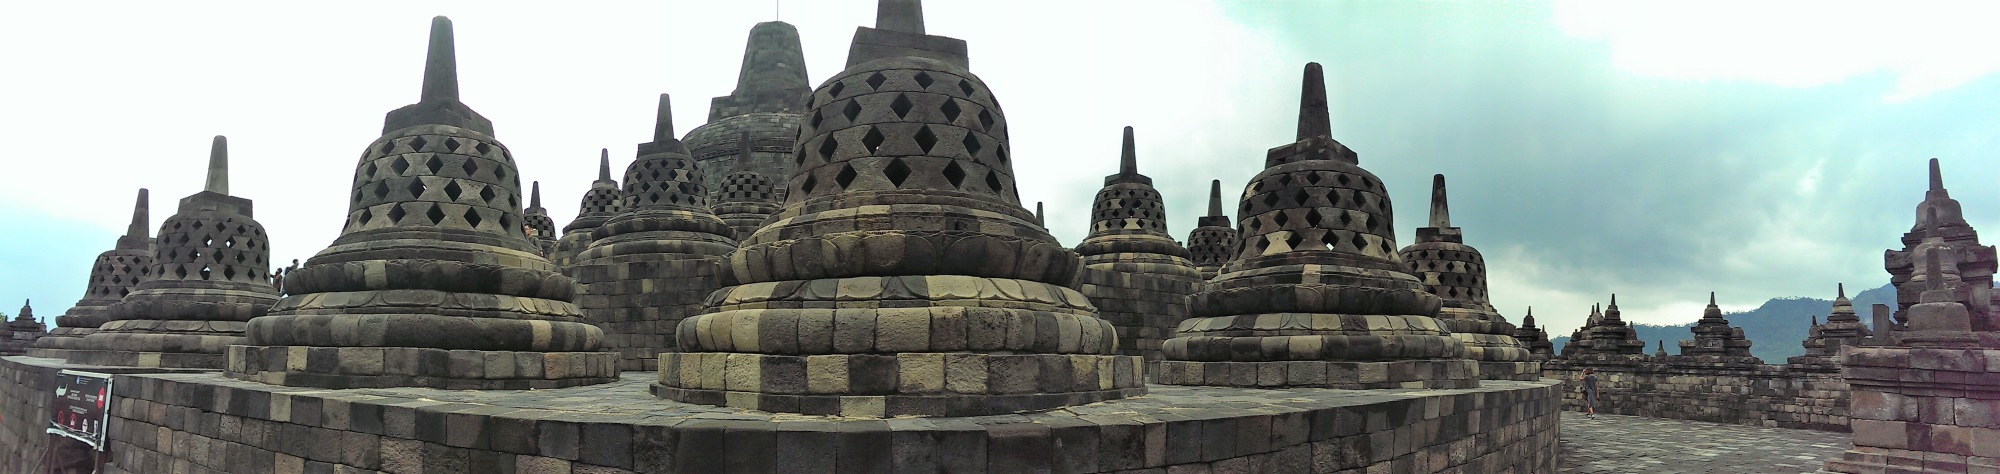 Things to do in Yogyakarta City Guide Borobodur Temple Indonesia Panorama